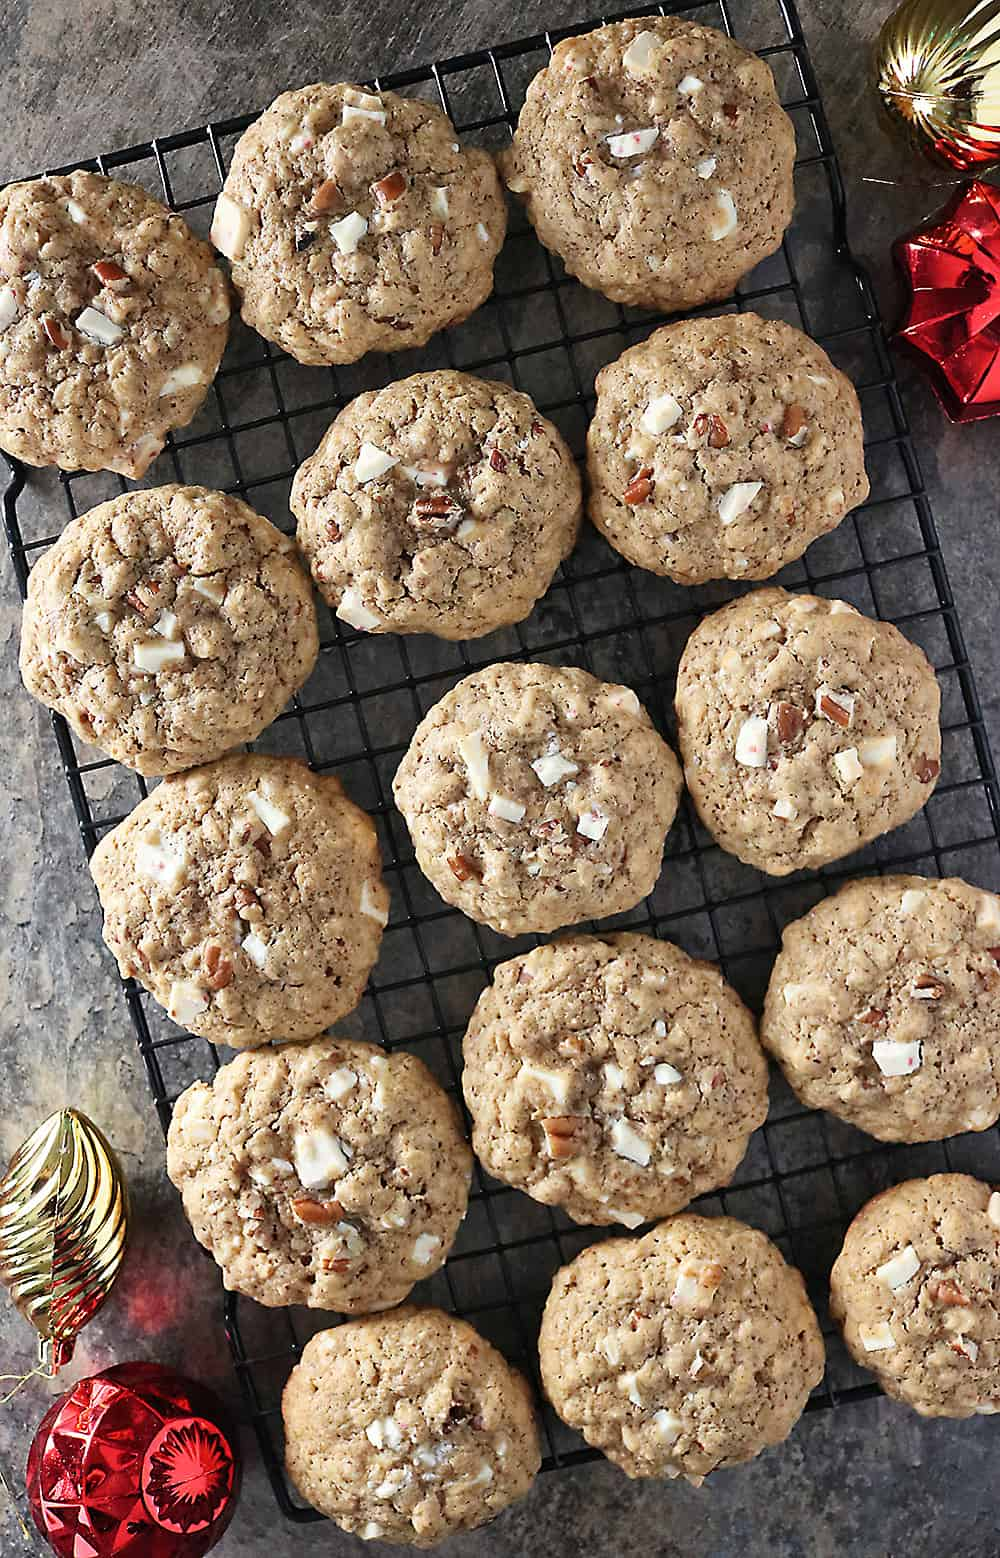 Gluten Free Peppermint Cookies are the holiday treat you can share with all your gluten-free friends! Easily the yummiest they'll have this season Image